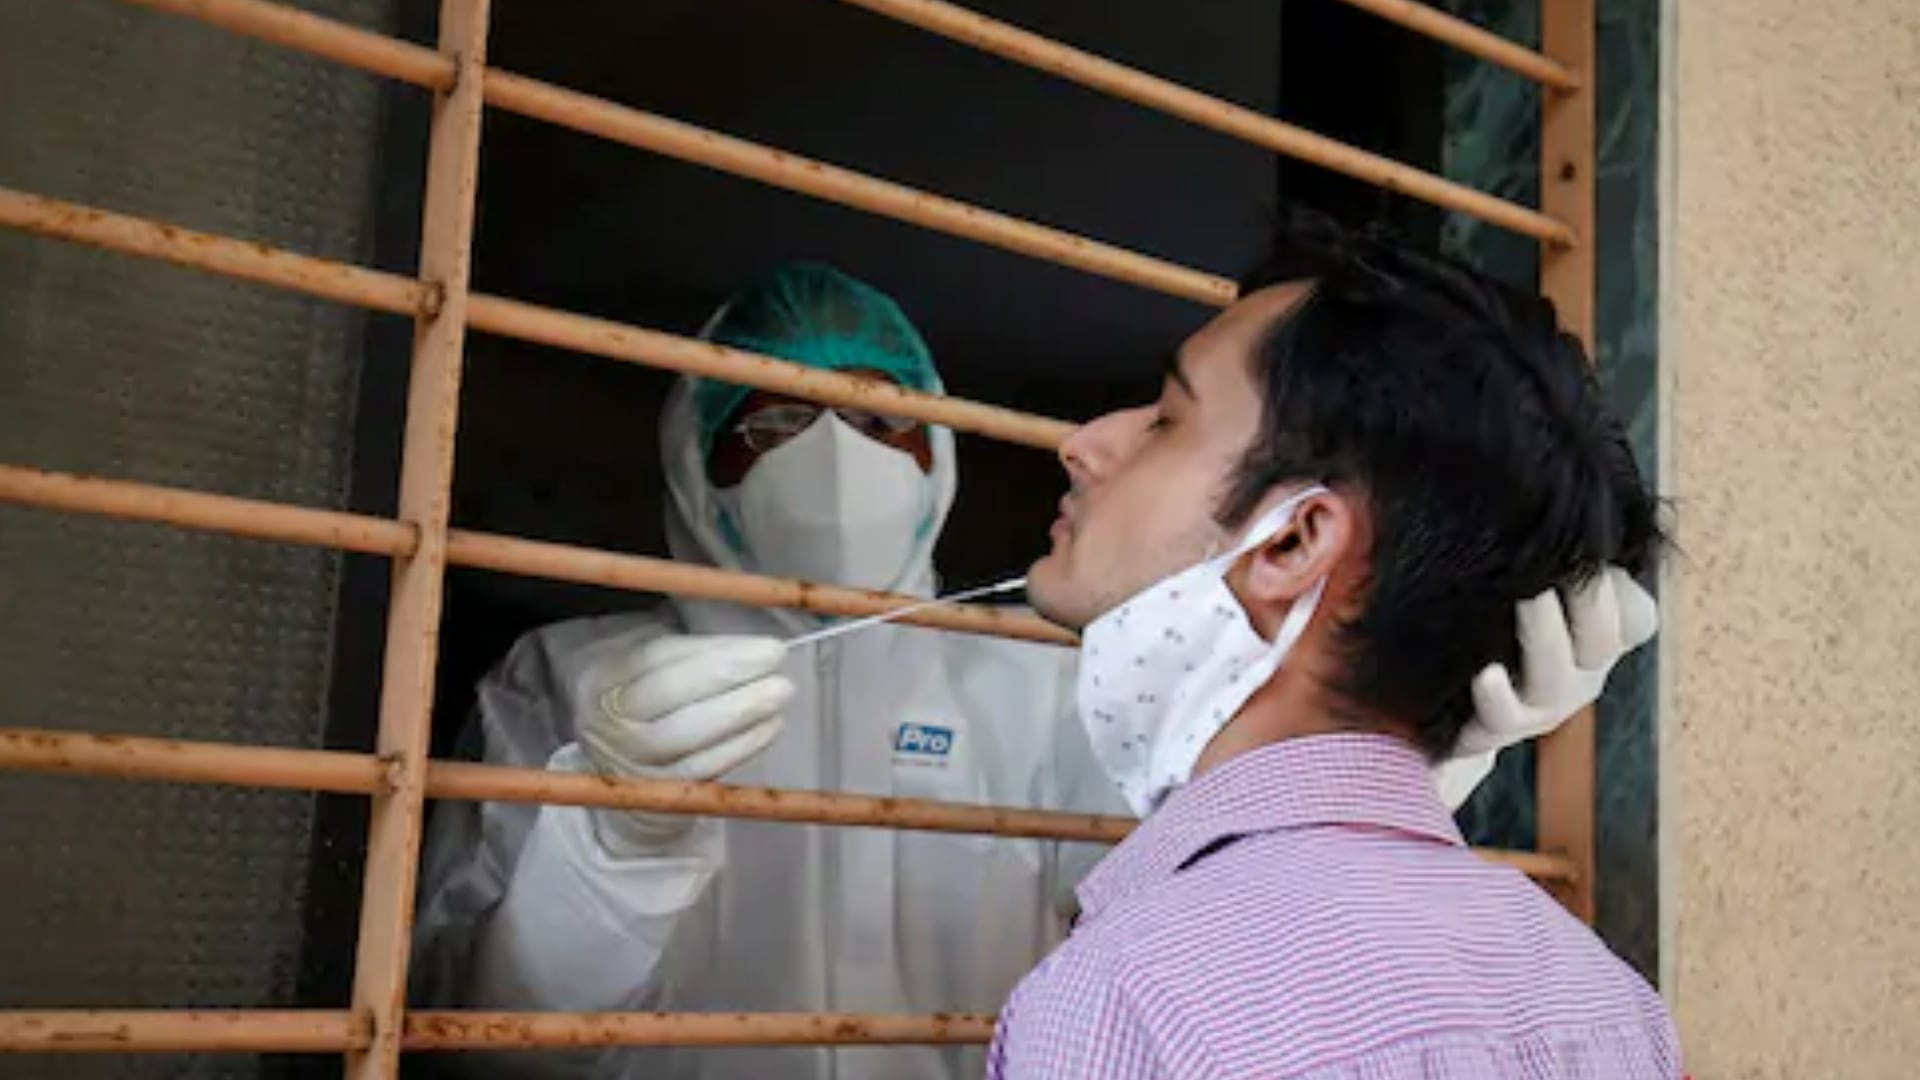 coronavirus-live-updates:-with-greatest-single-day-dive-of-nearly-98,000-cases,-india's-covid-19-tally-crosses-51-lakh-mark;-death-toll-mounts-to-83,198